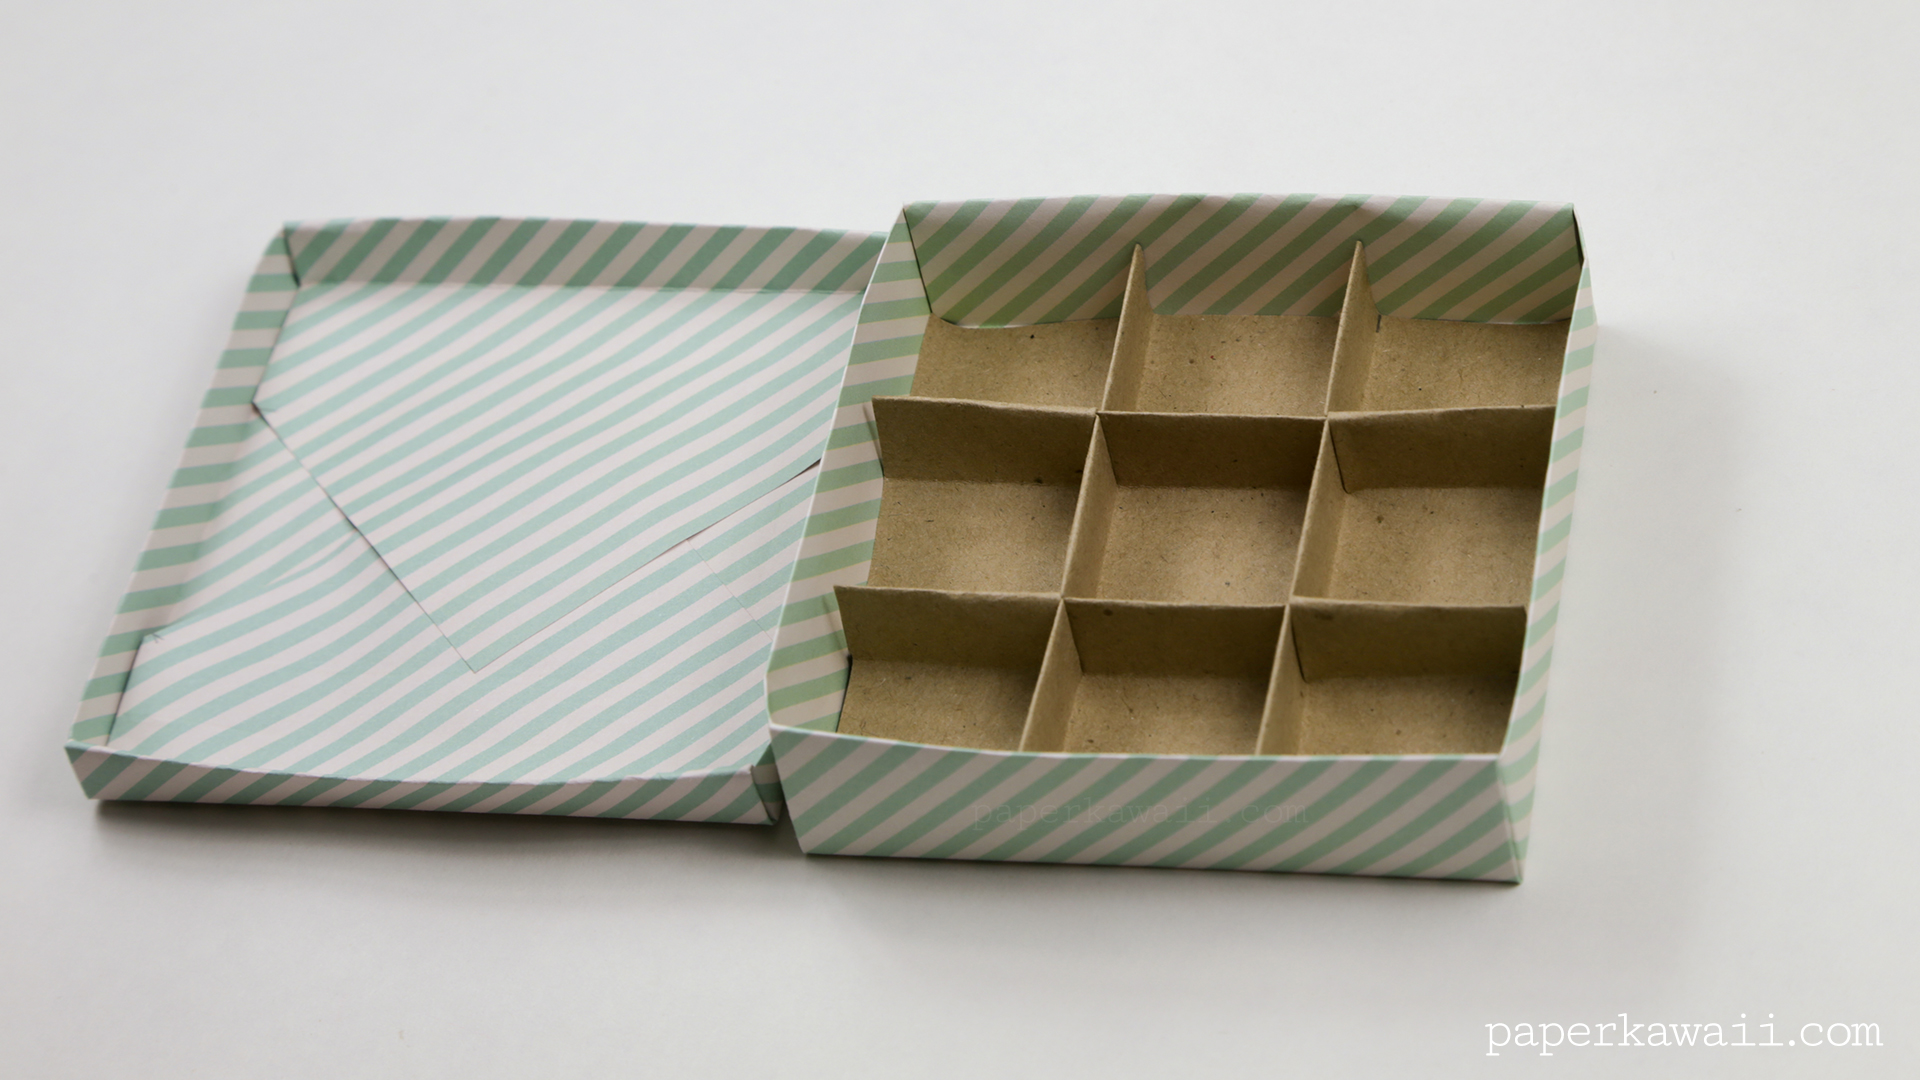 9 Section Origami Box Divider Instructions If You Are Making The Whole Tic Tac Toe Game Tutorial For Cube And Tiles